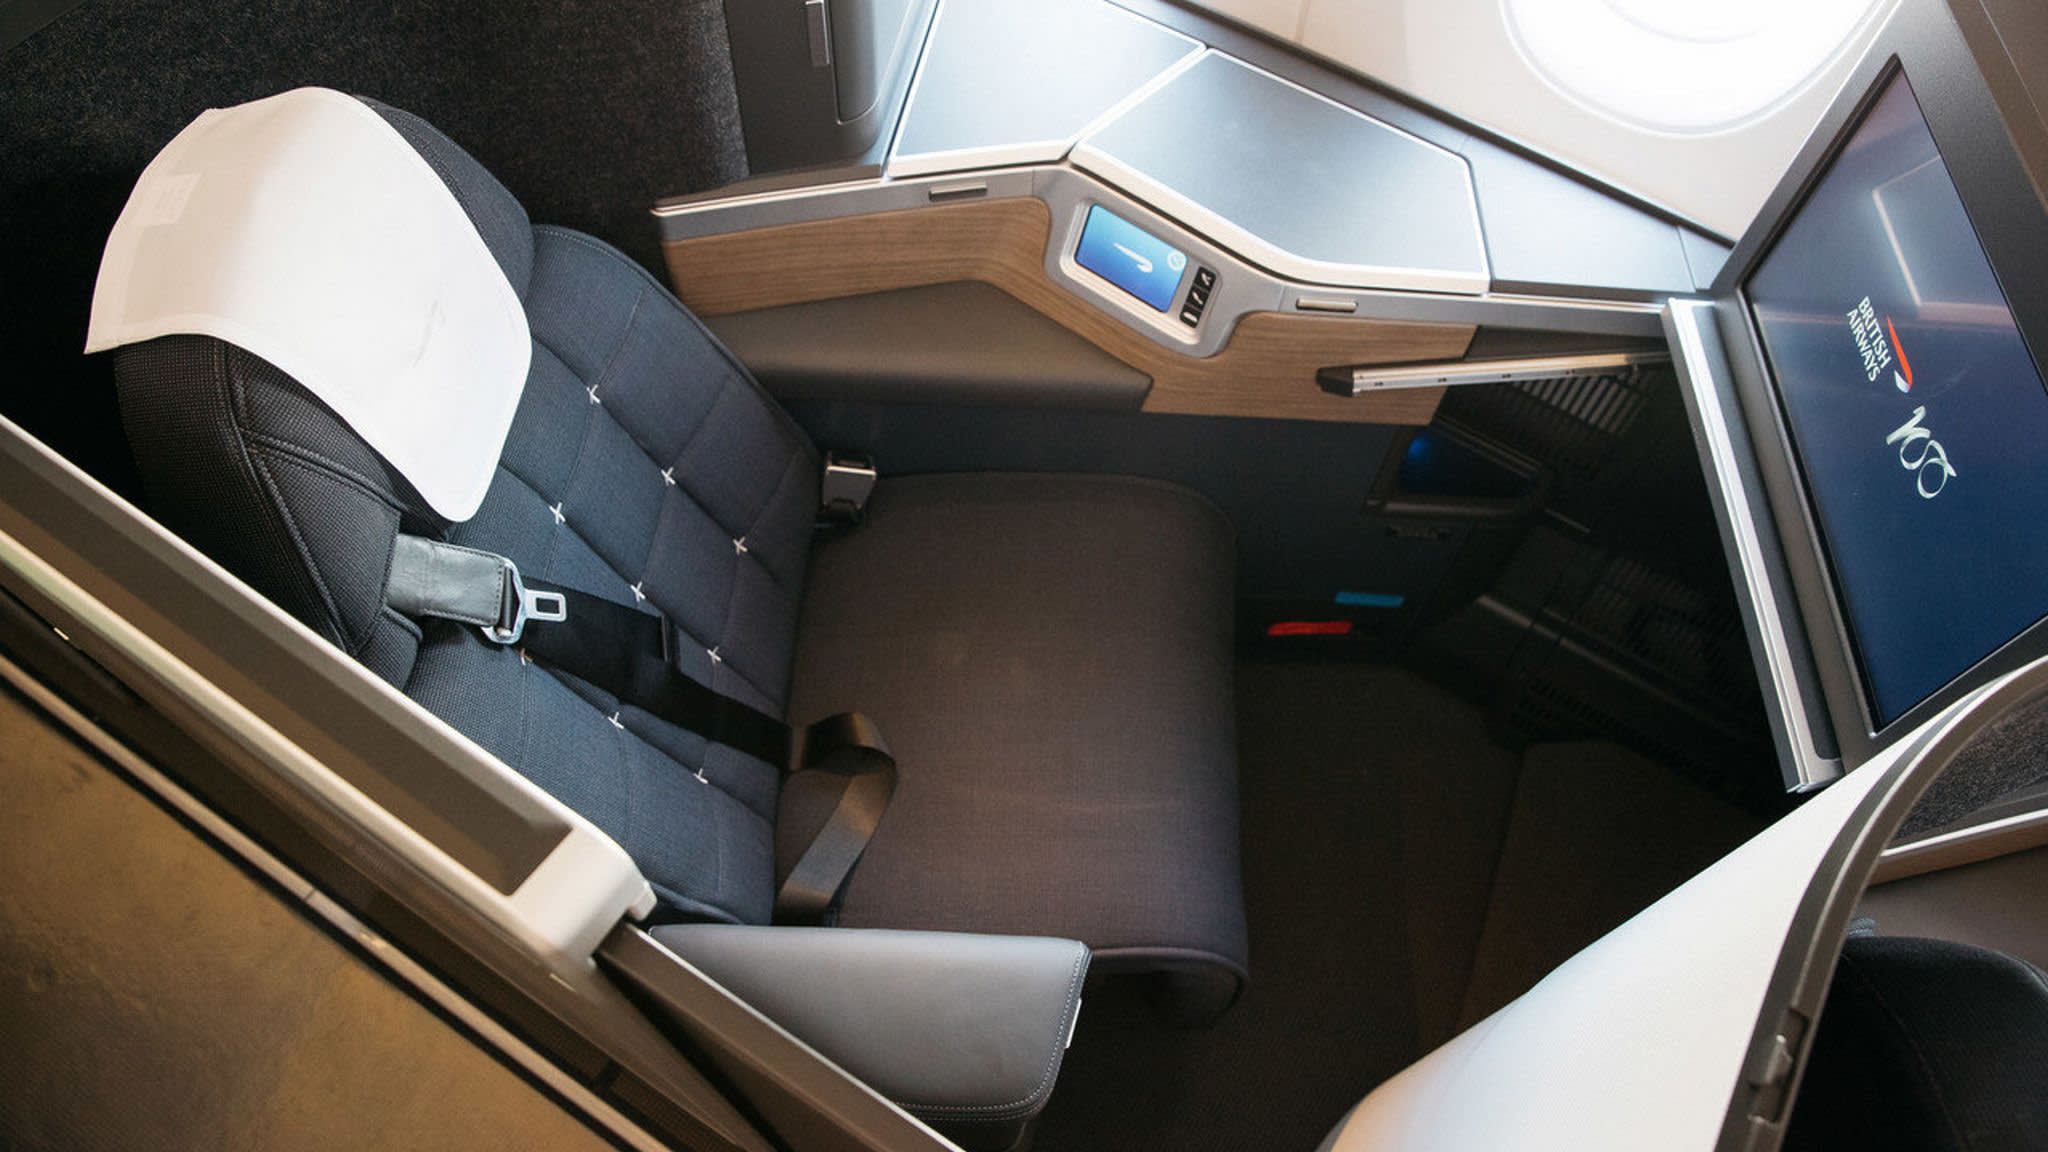 Frequent flyer: will BA's new business class seats restore